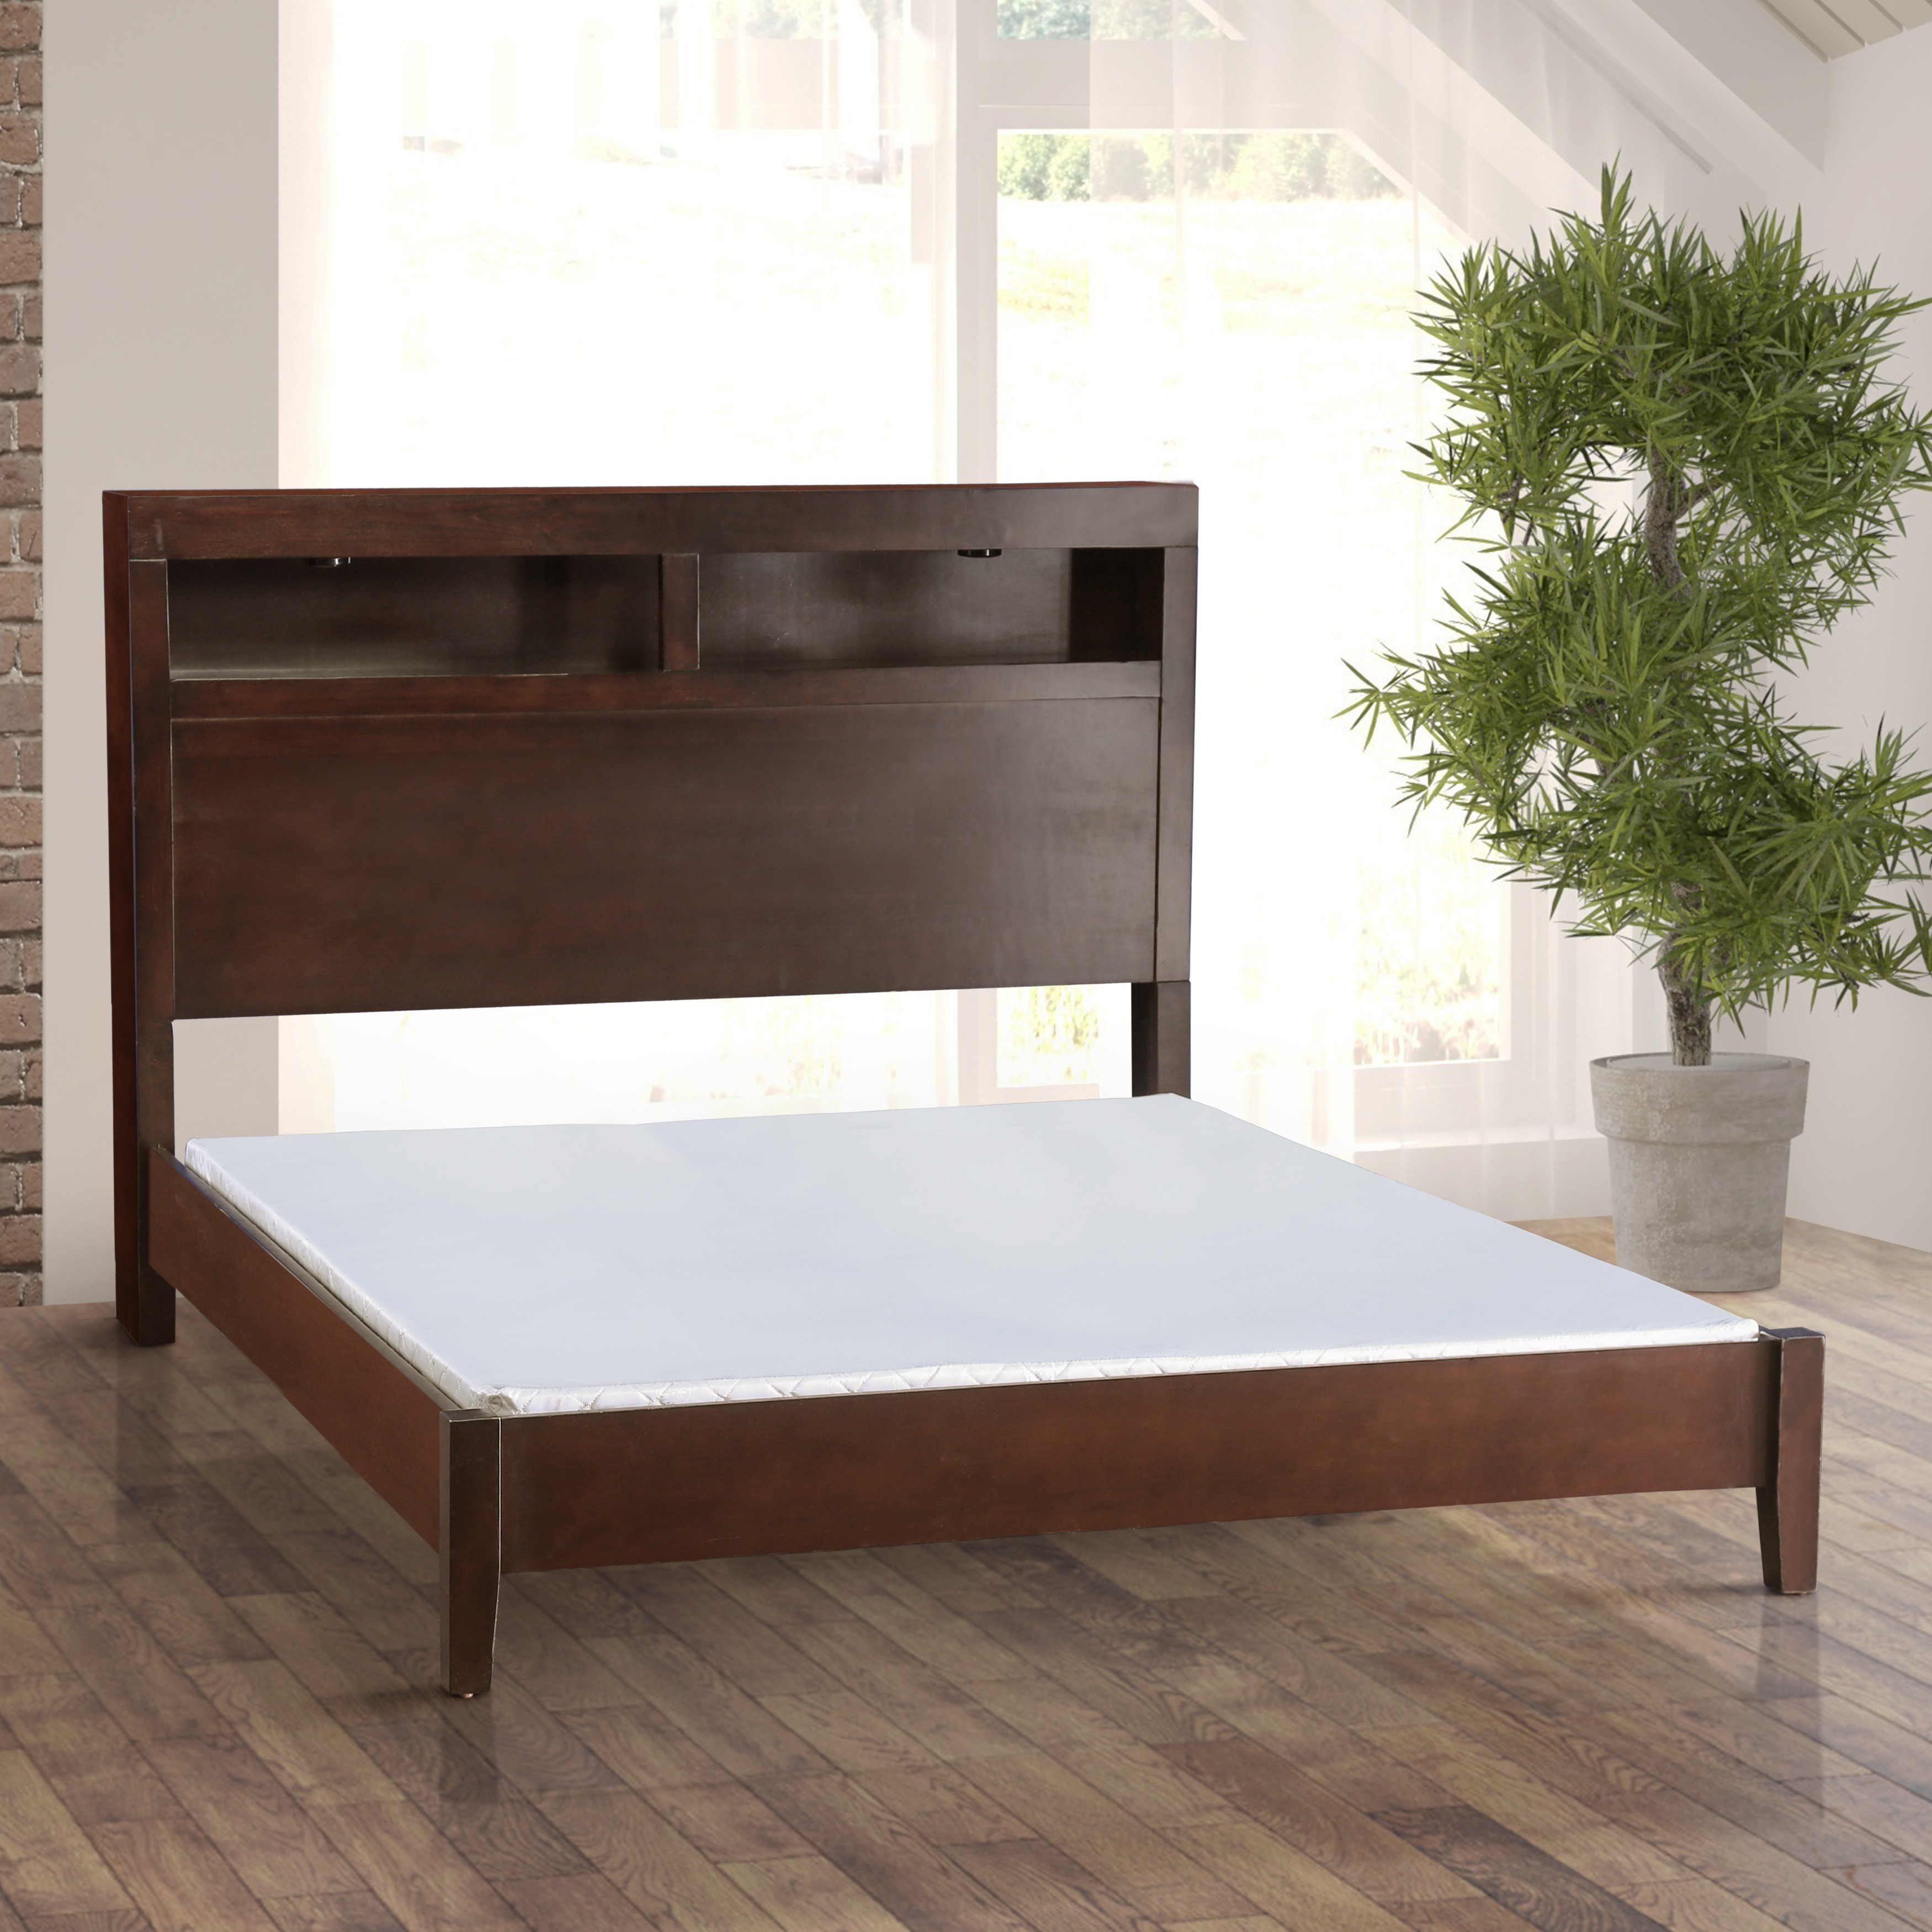 Furniture of America miBasics 2-inch Cal King-size Bunkie...